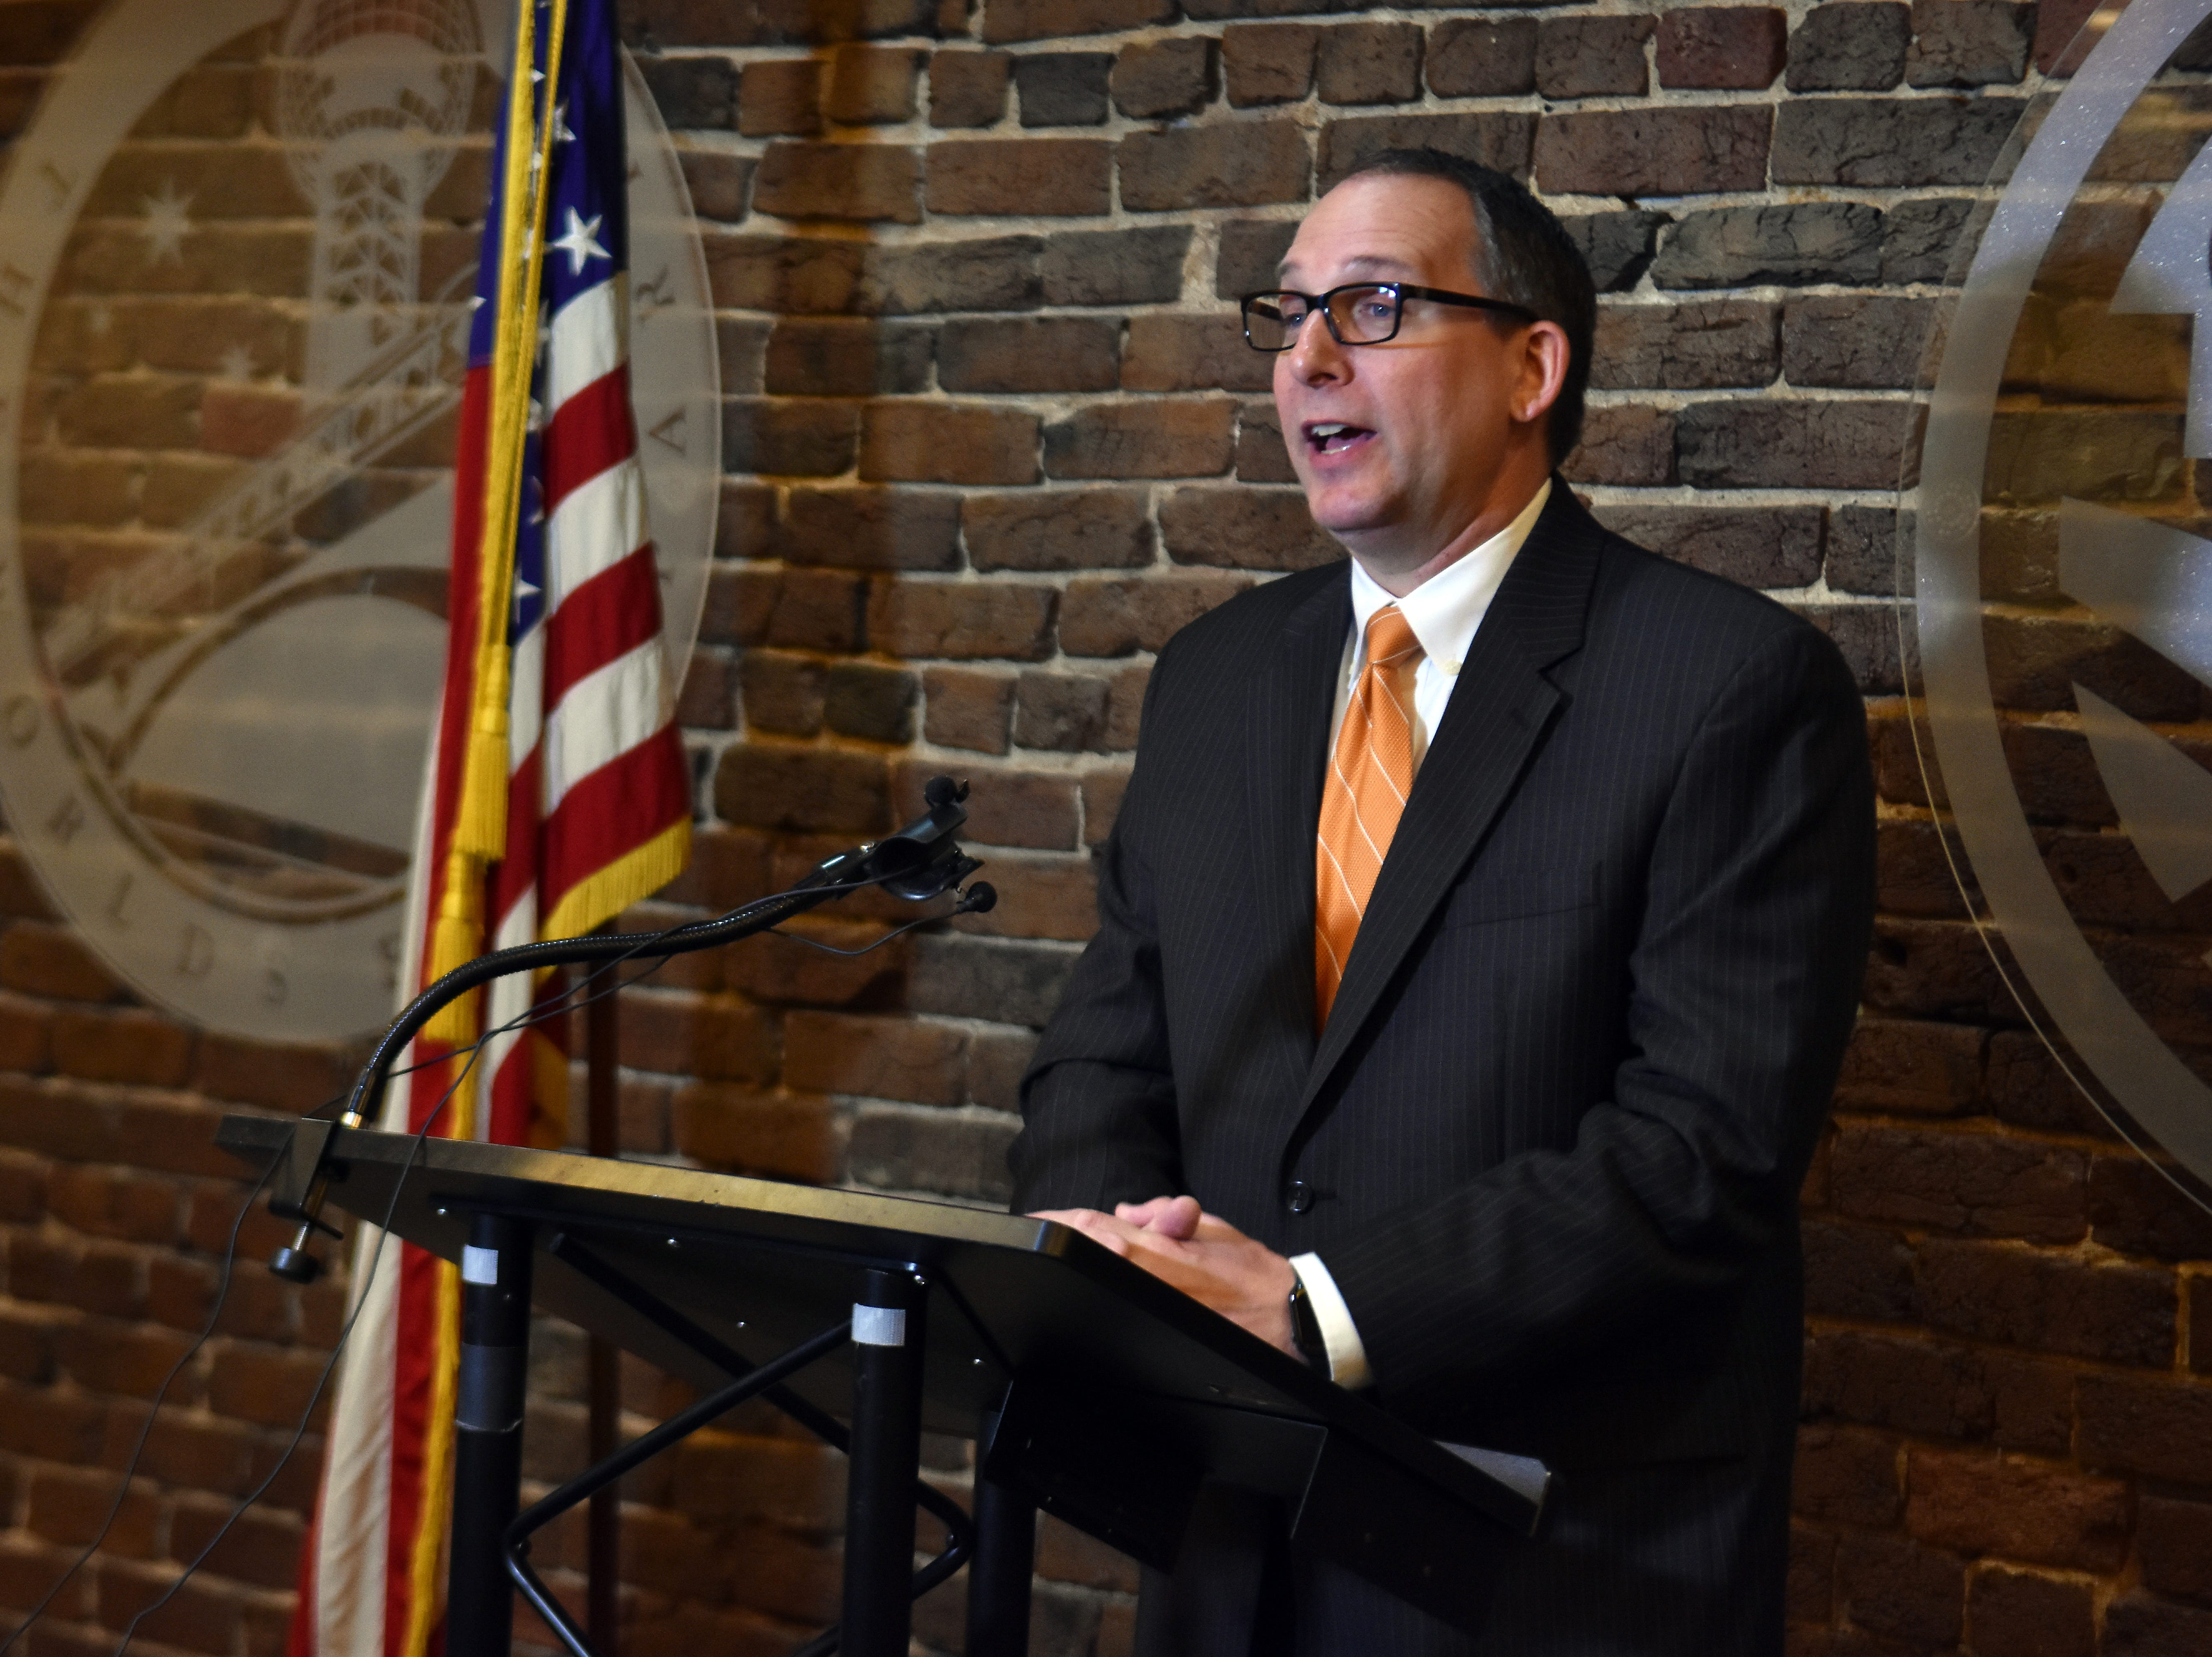 Mike Odom was named the new CEO of the Knoxville Chamber during a press conference on Tuesday, March 26.